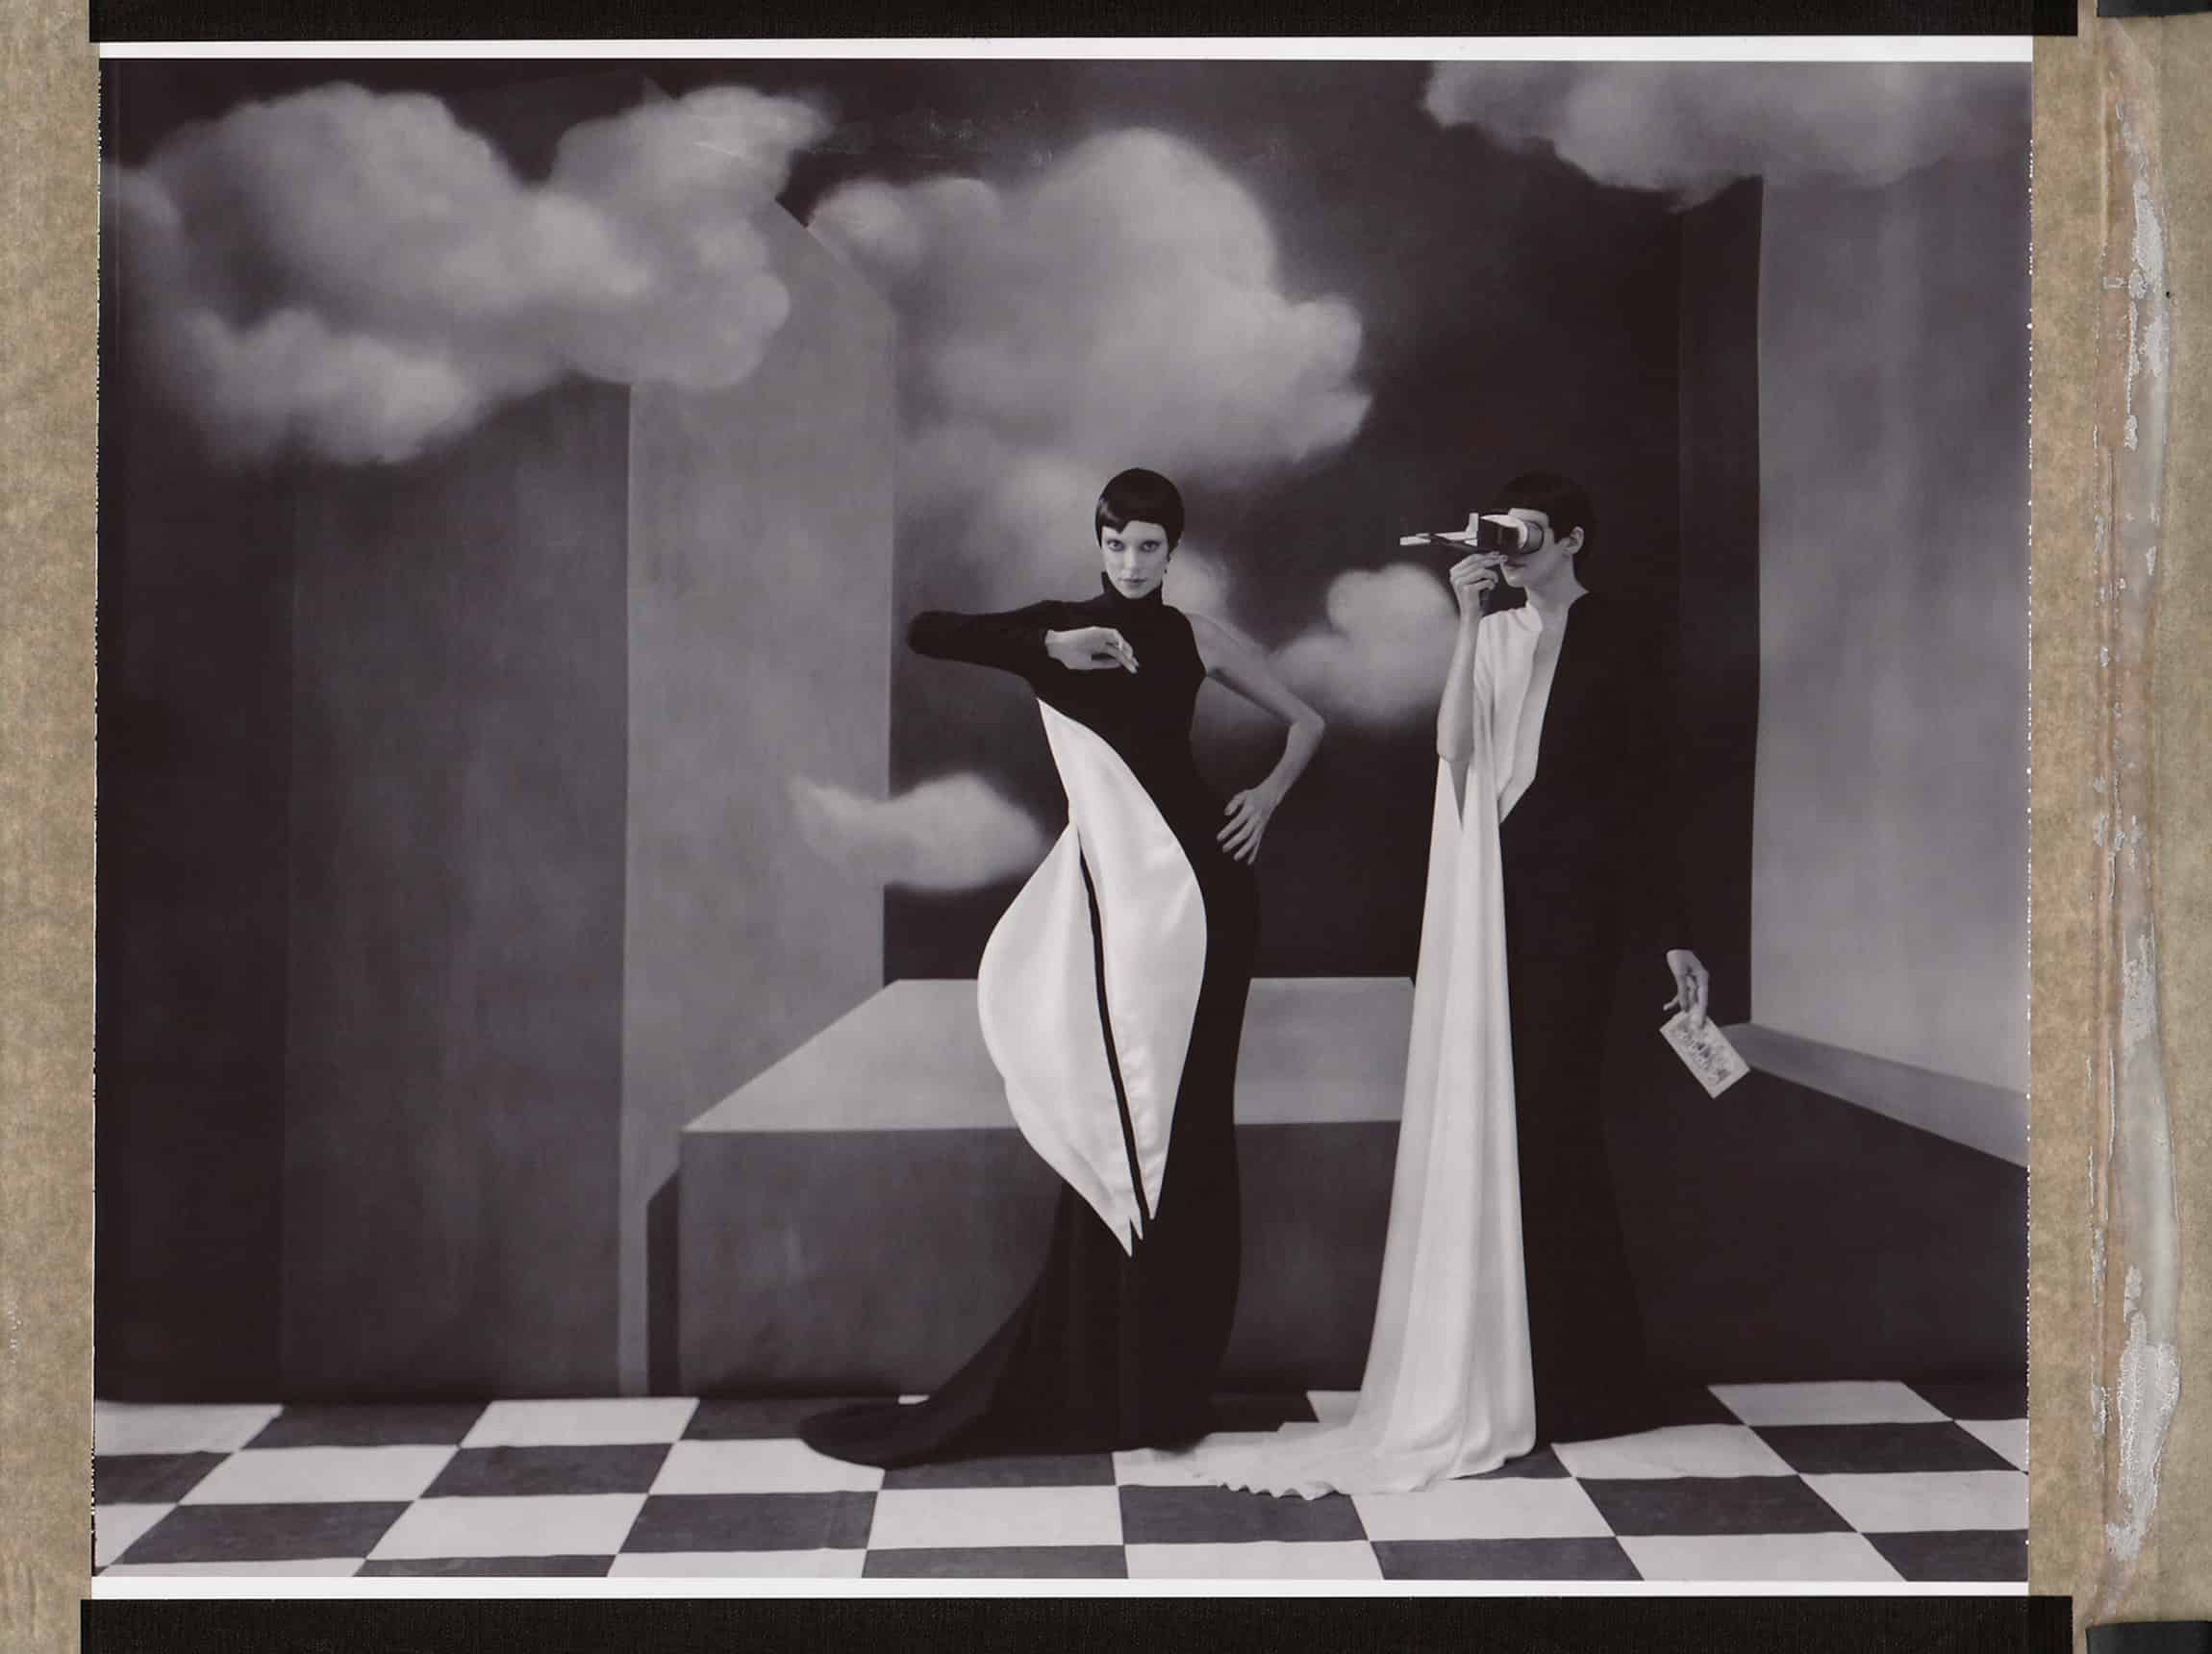 Fine Art b/w photography of twin fashion models wearing haute couture by Stephane Rolland. Handpainted backdrop inspired by René Magritte paintings